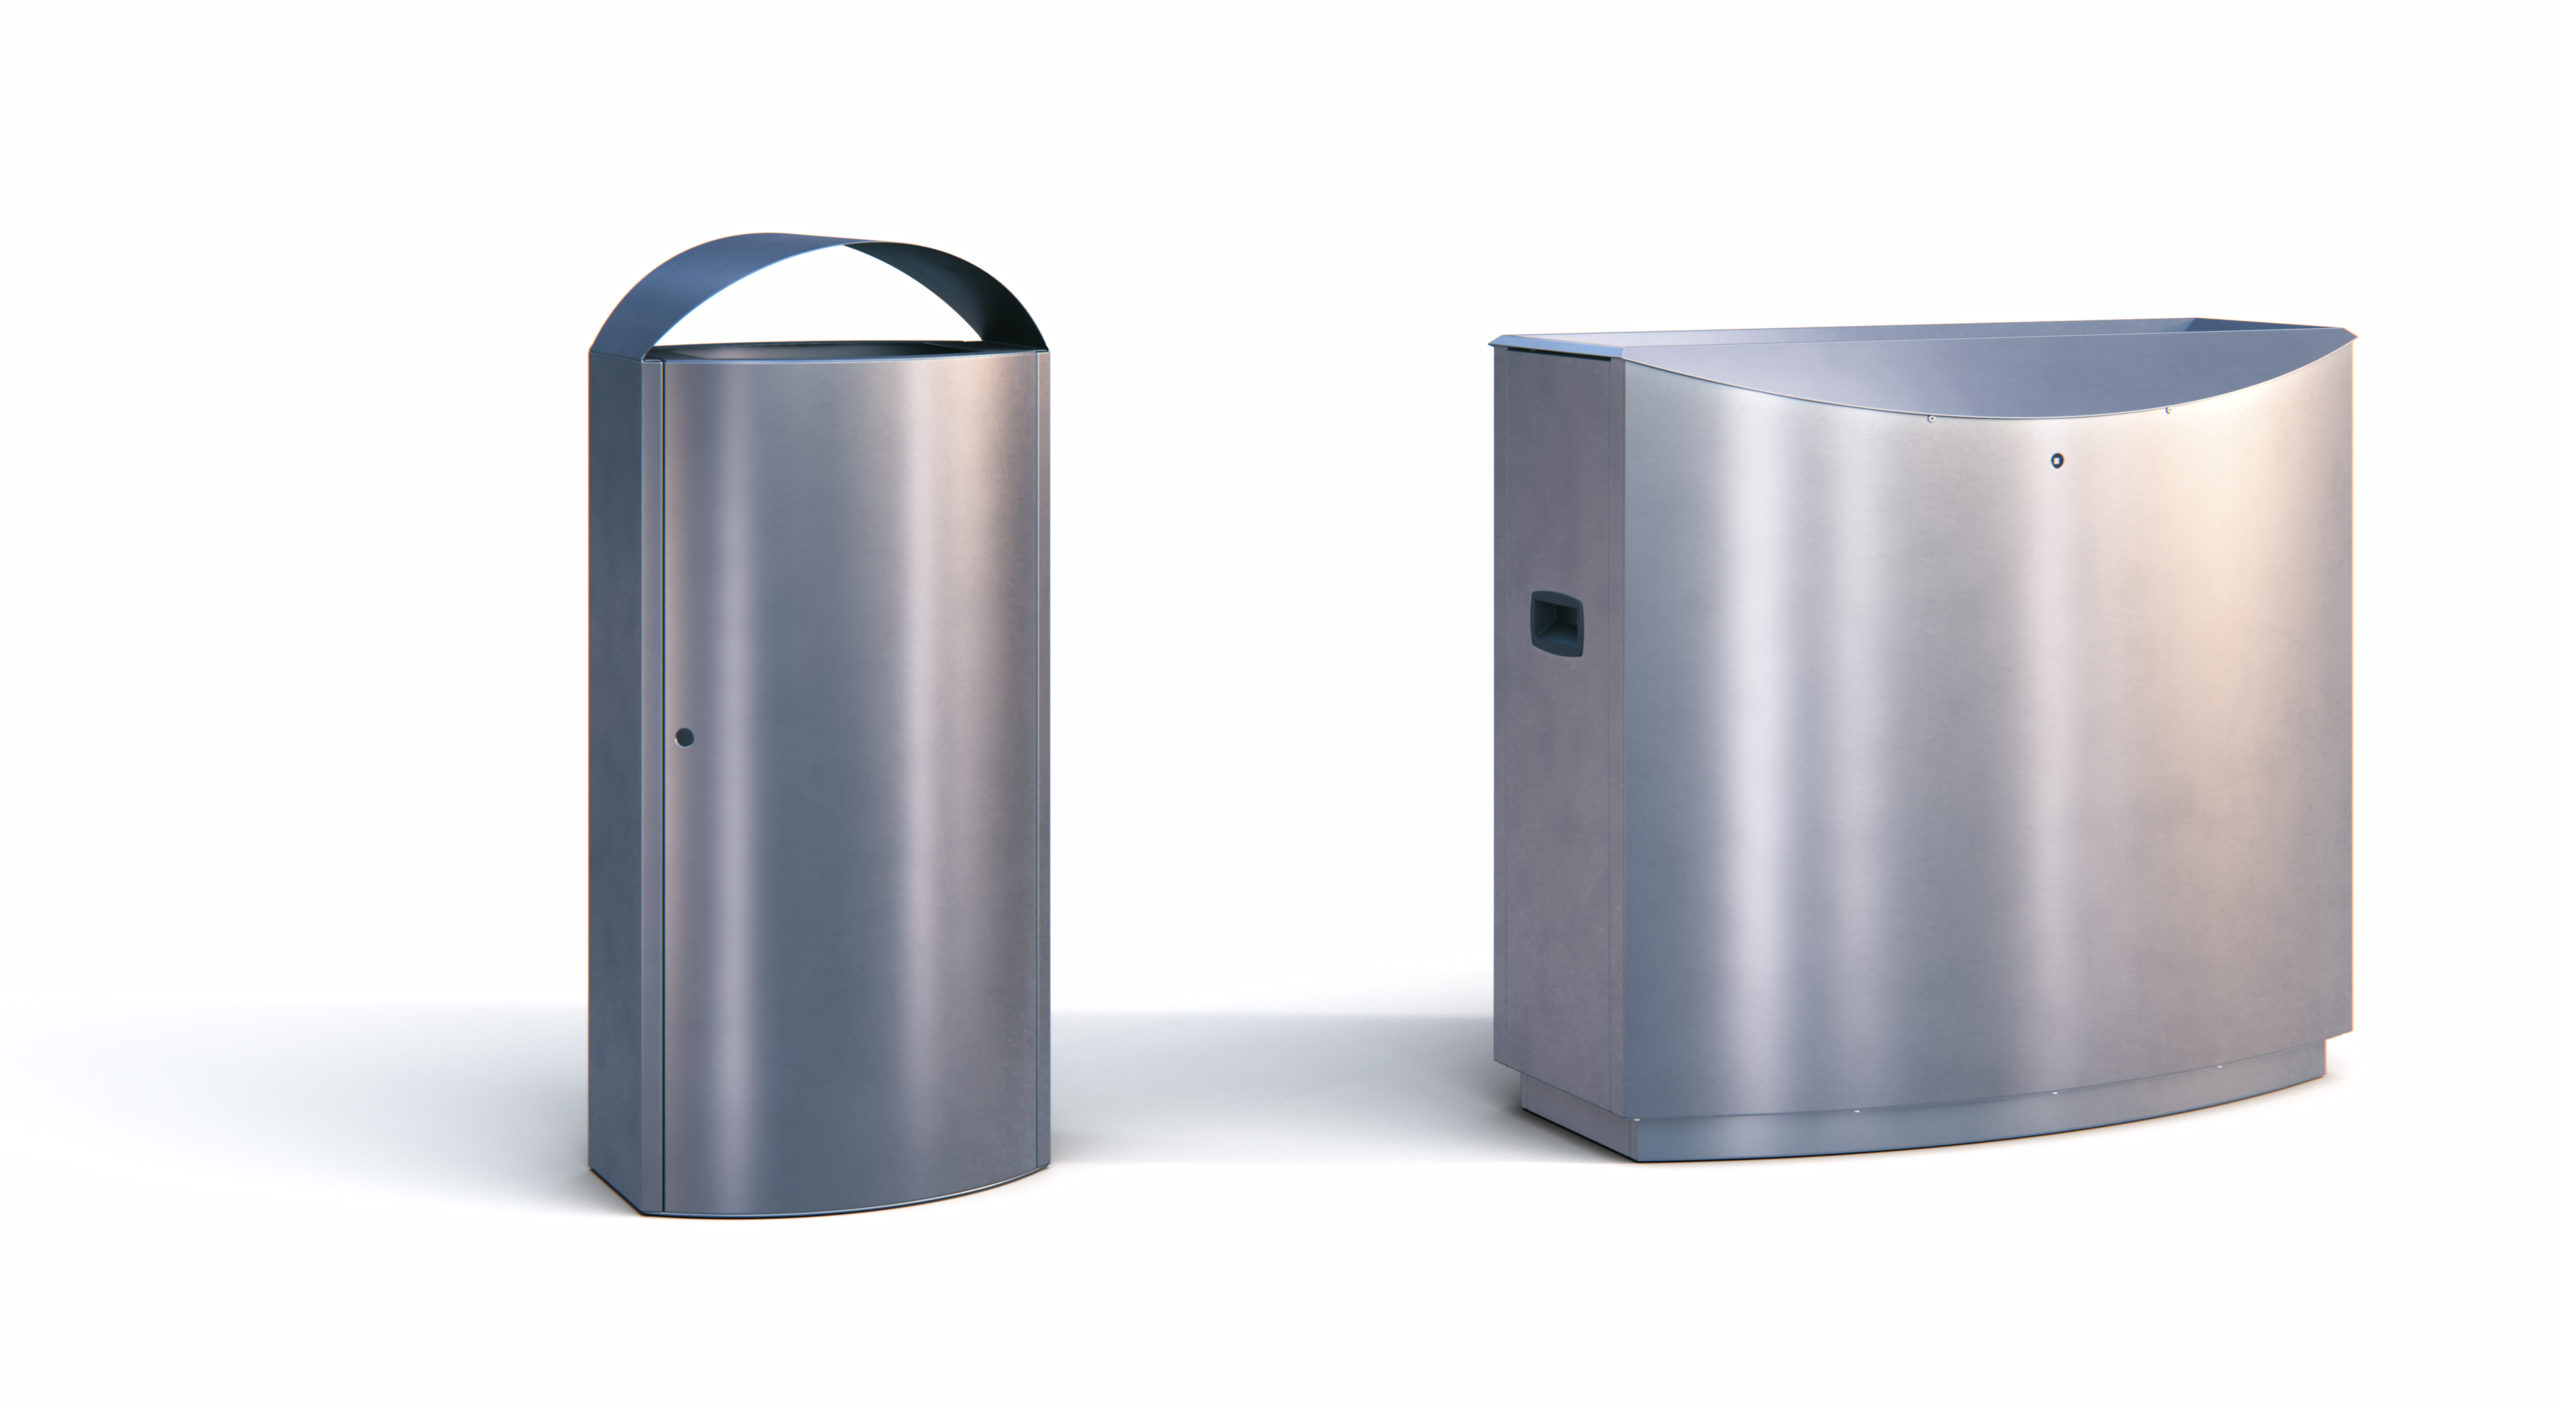 AUWEKO Stainless Steel Bins